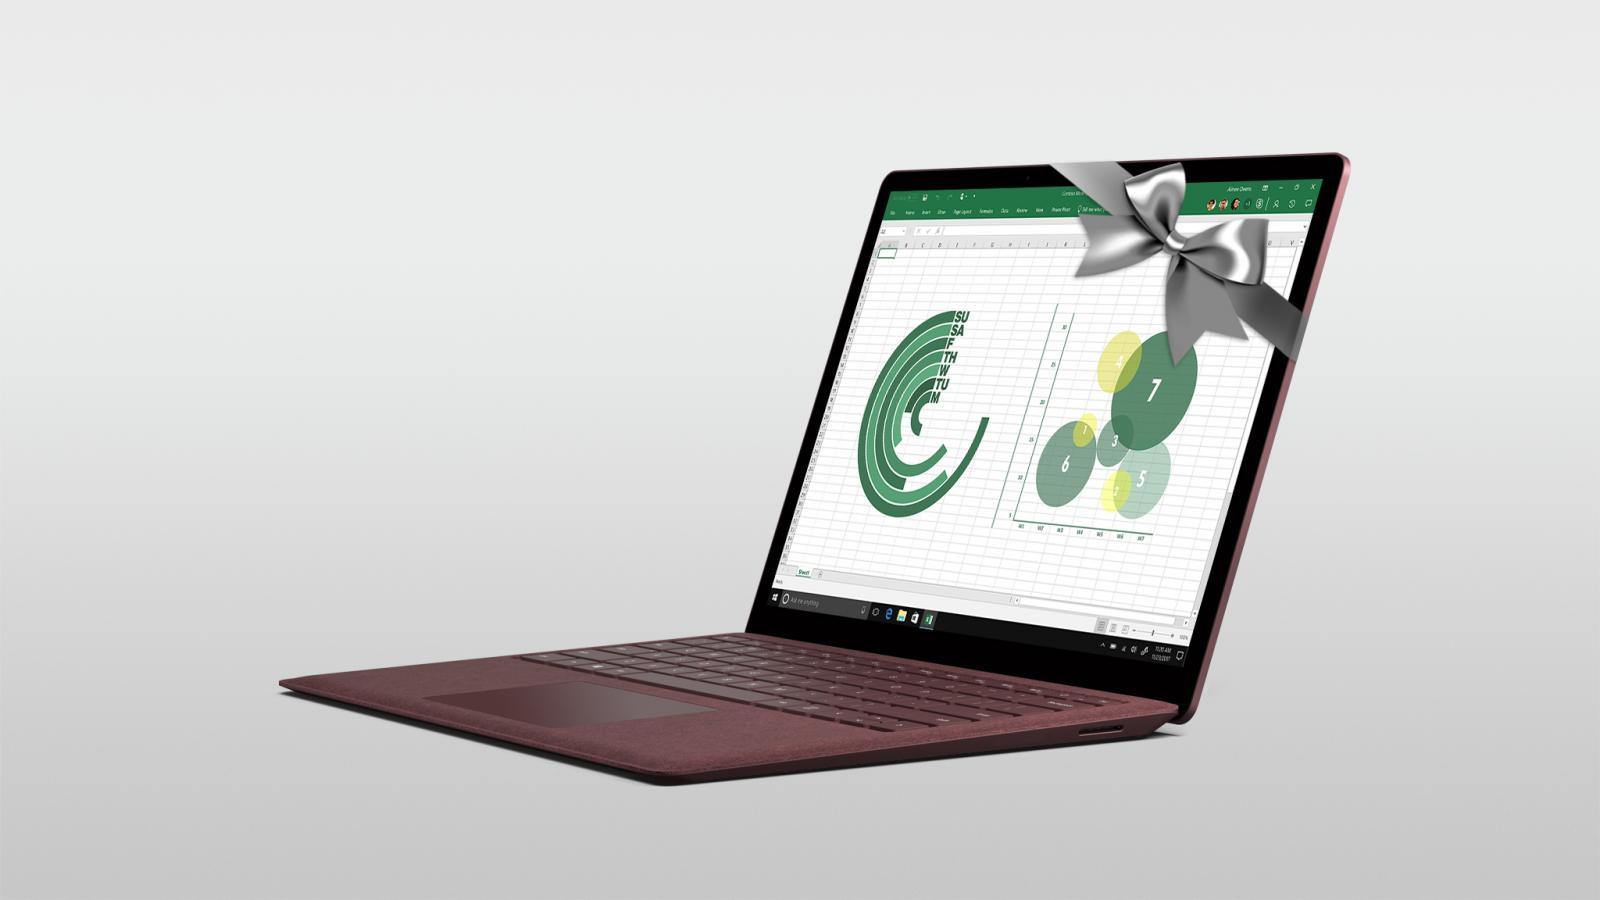 Surface Laptop in Burgundy wrapped in a silver bow with Excel shown on the screen.